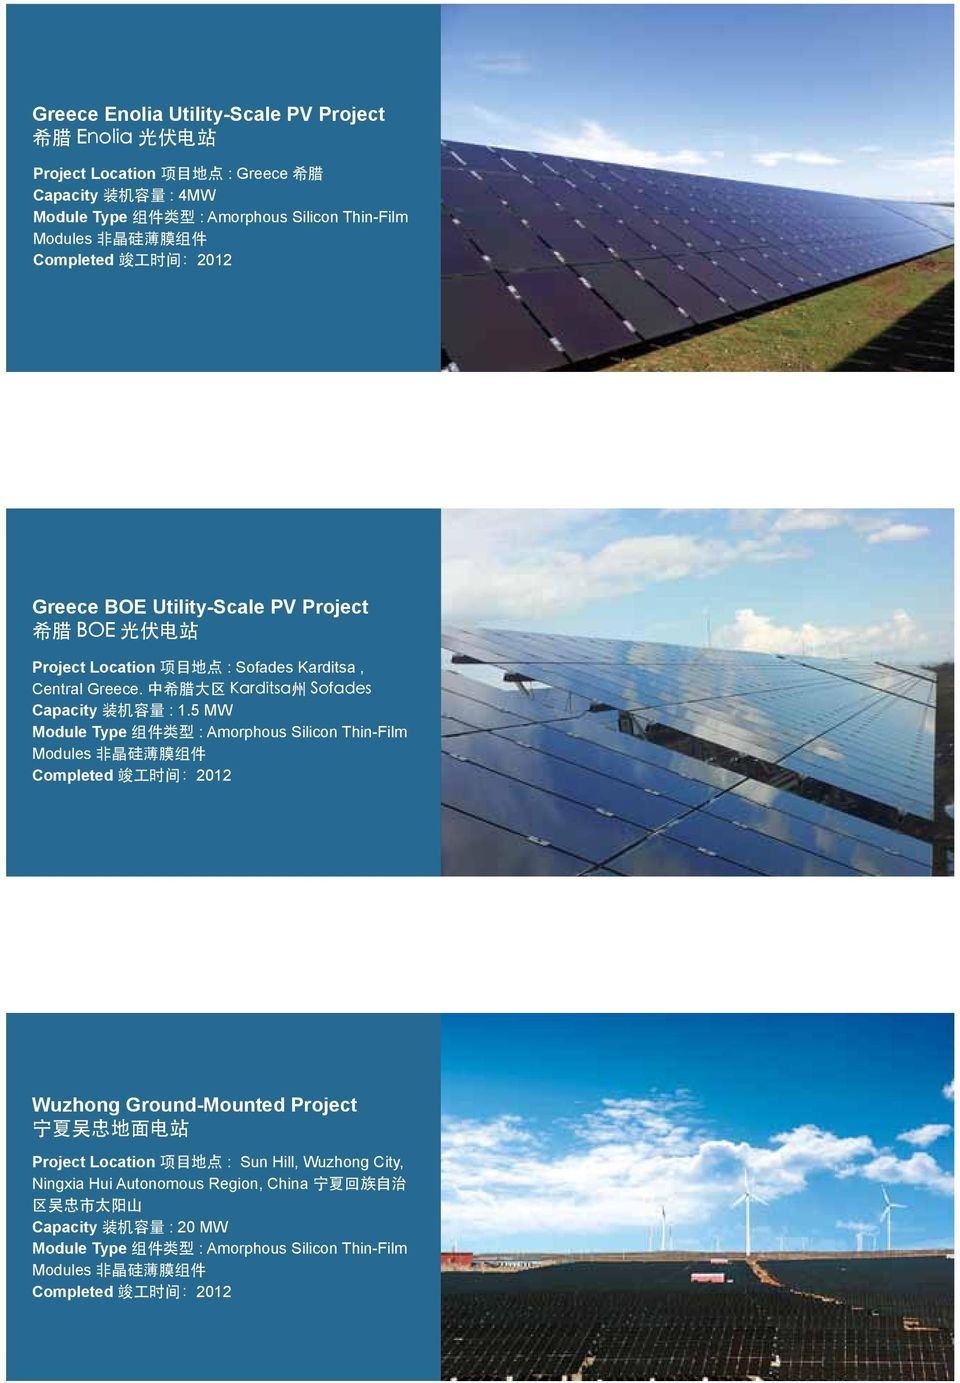 5 MW Module Type : Amorphous Silicon Thin-Film Modules Completed 2012 Wuzhong Ground-Mounted Project Project Location : Sun